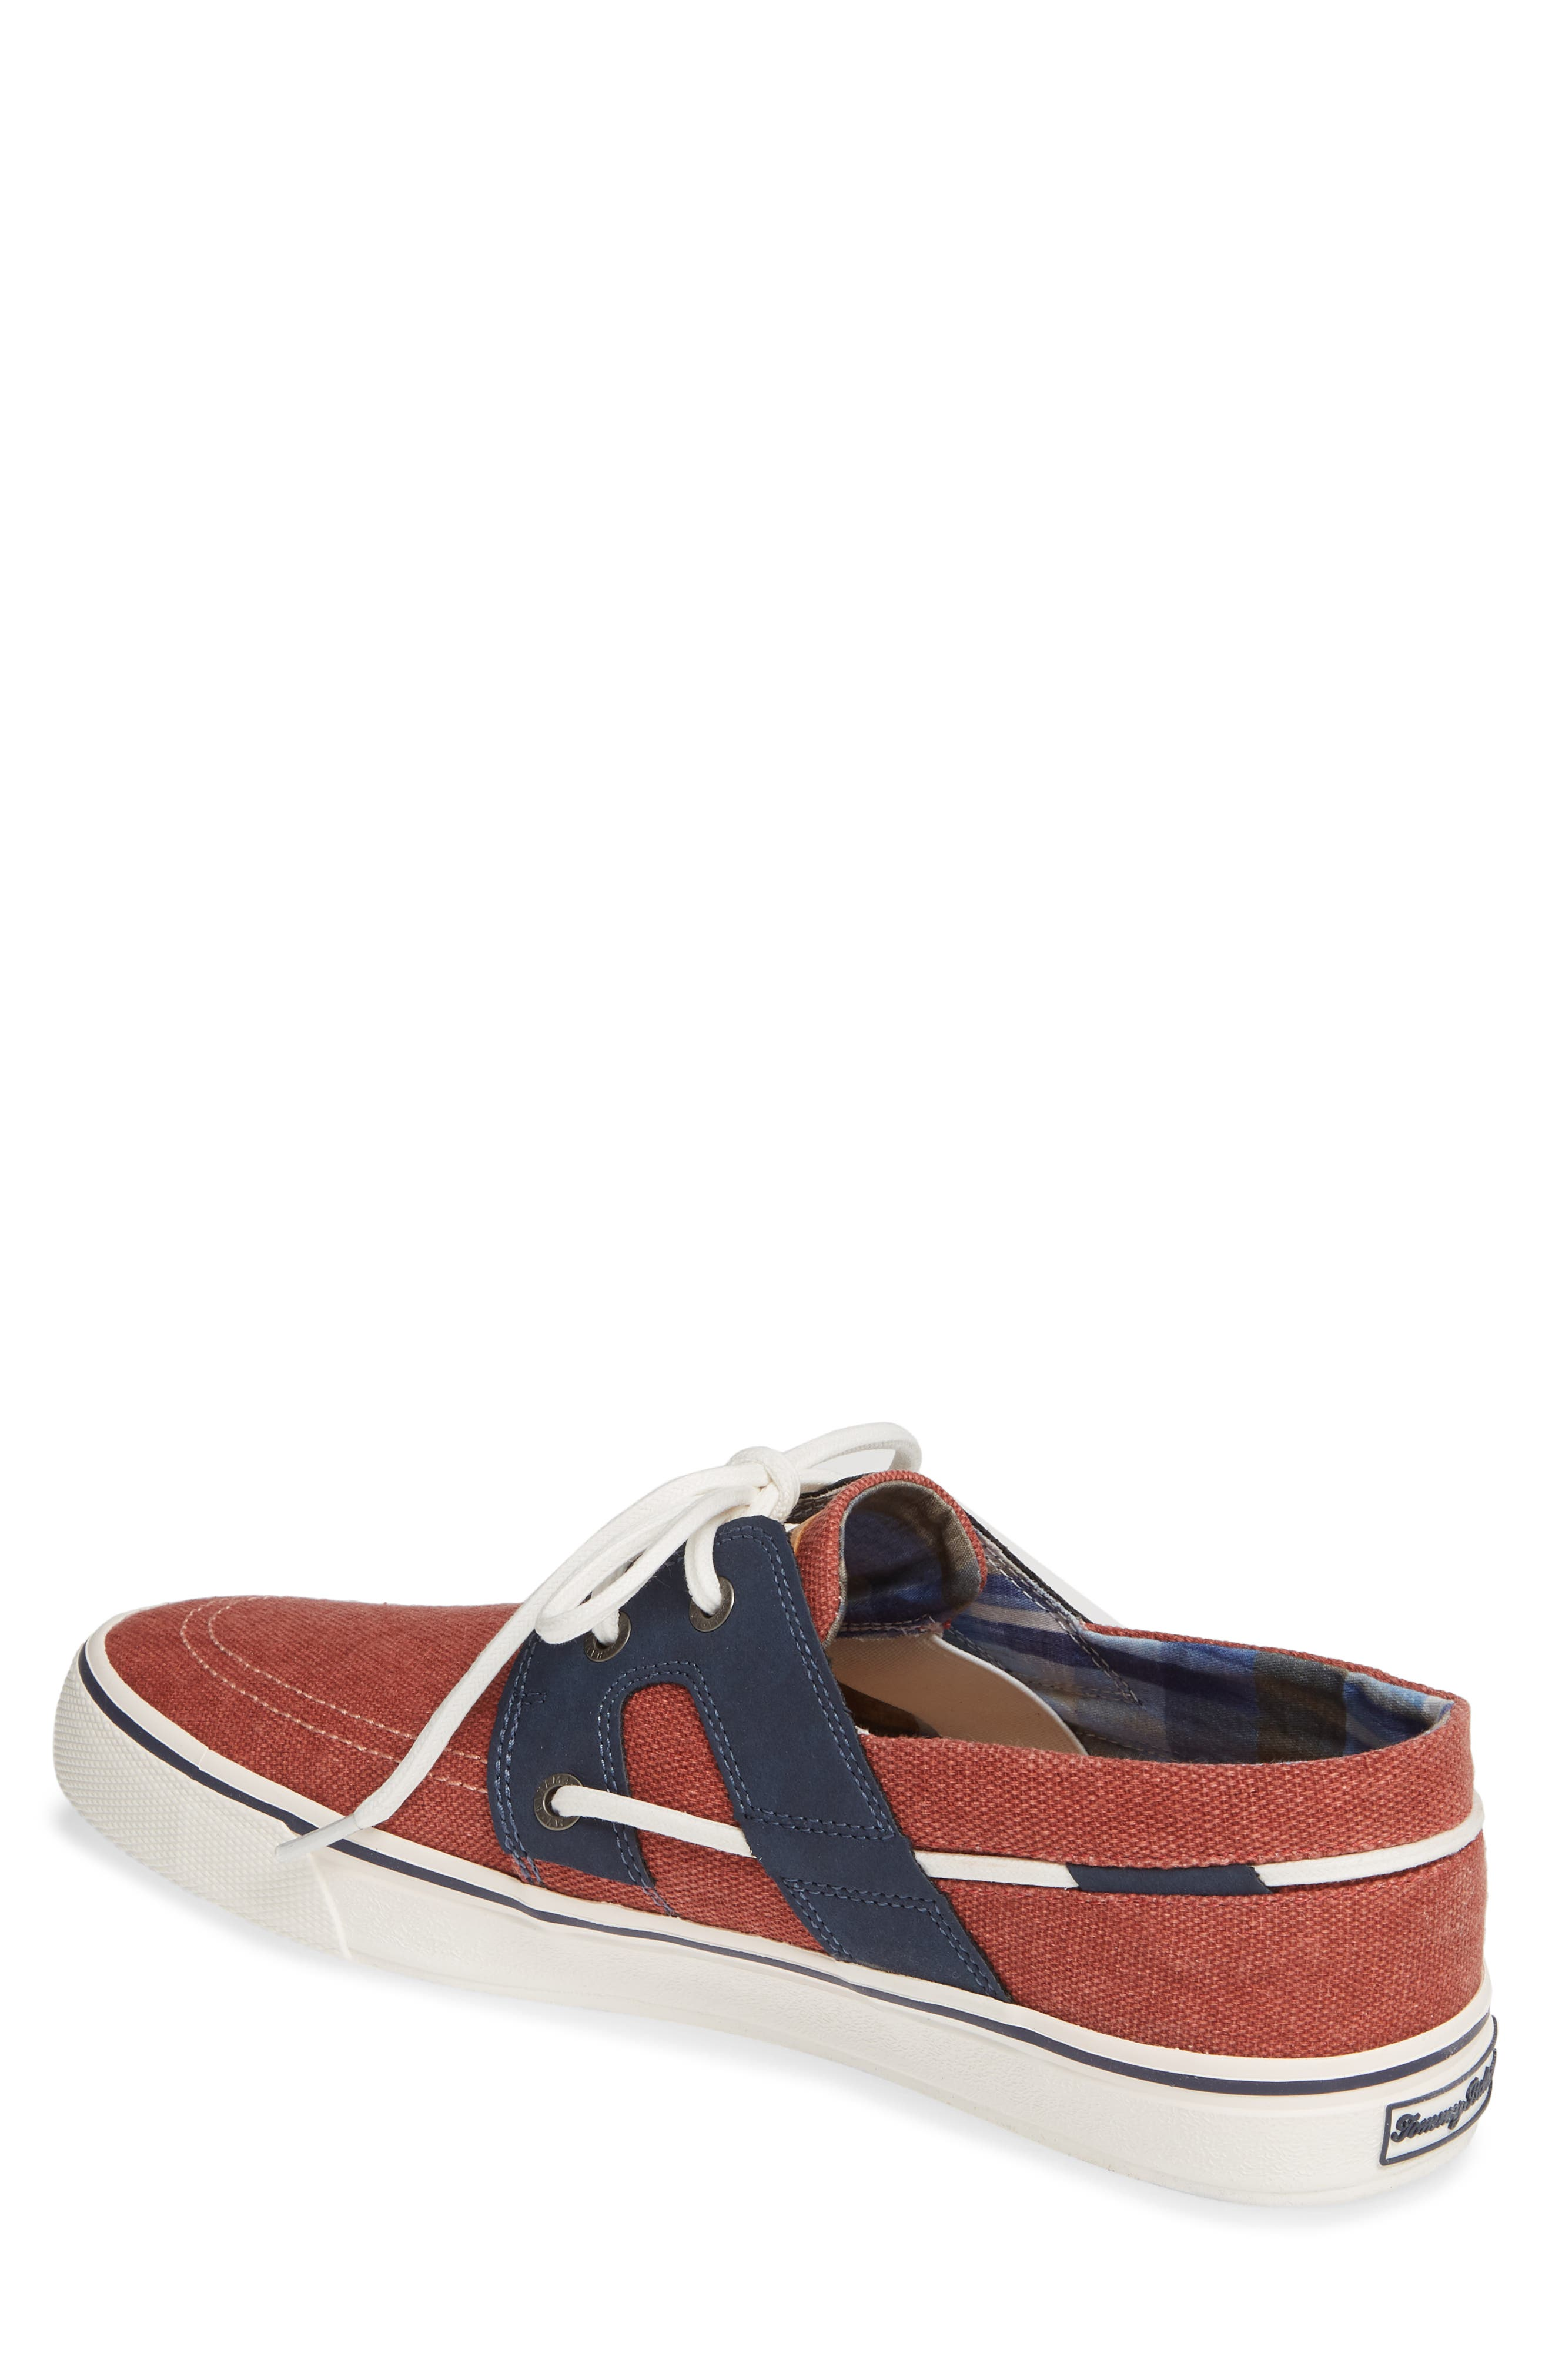 TOMMY BAHAMA, Stripe Breaker Sneaker, Alternate thumbnail 2, color, RED WASHED CANVAS/ LEATHER